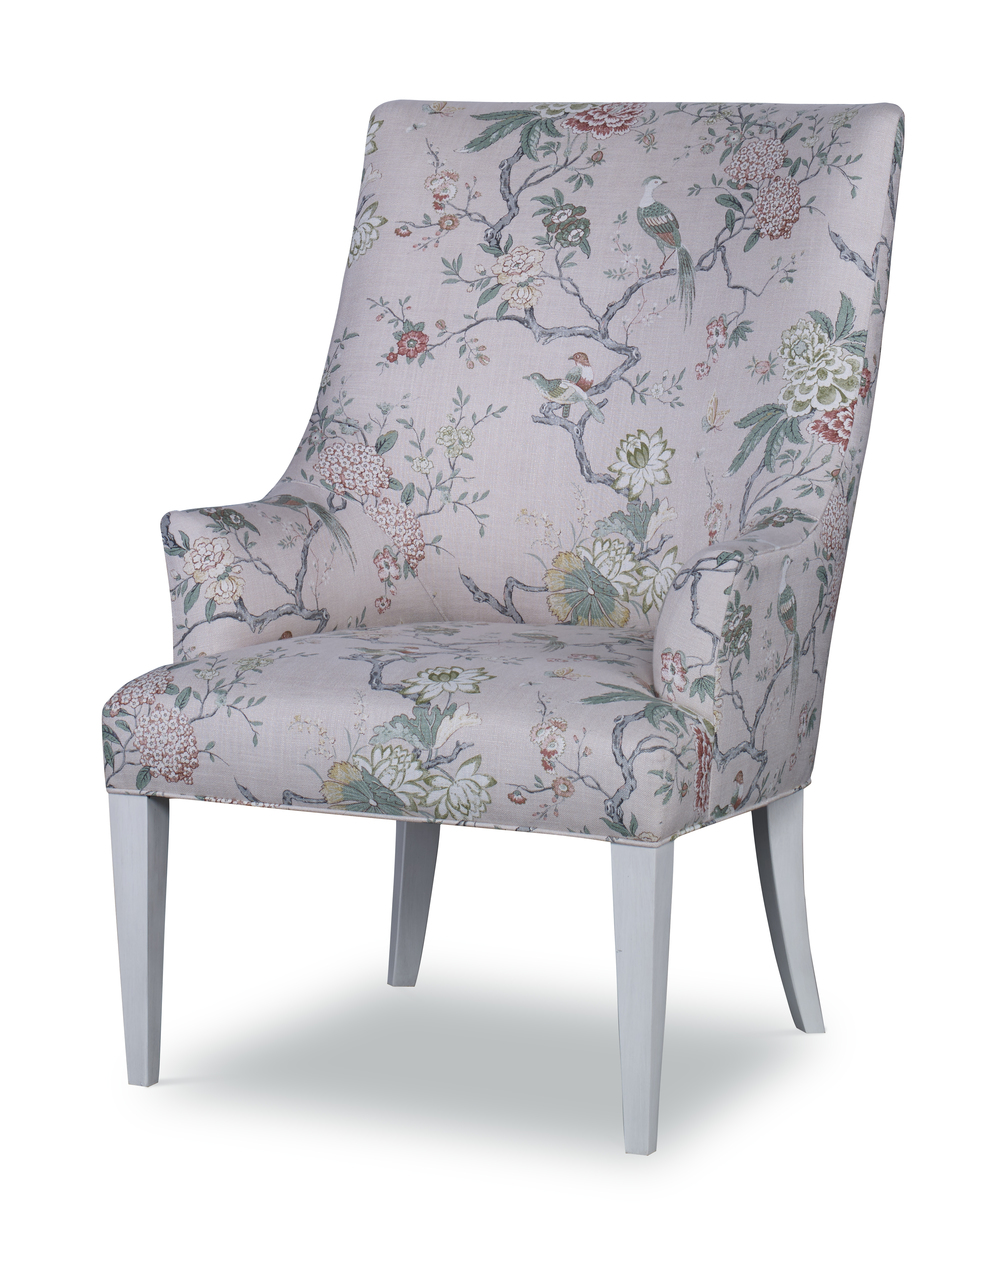 Highland House - Victoria Wing Chair